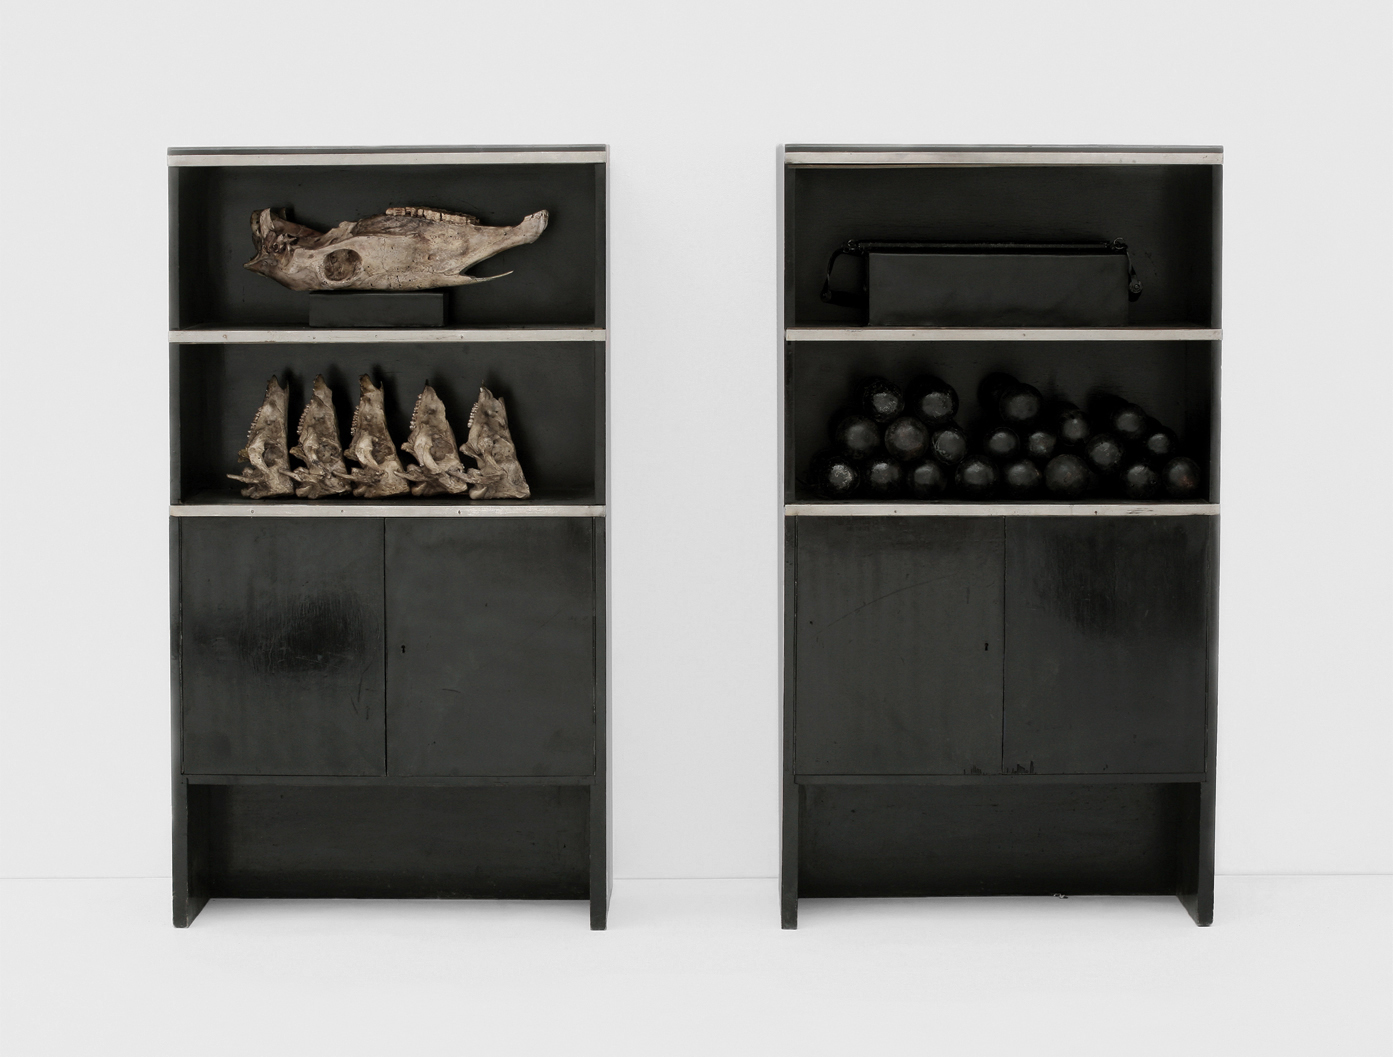 POSSESIA / Primal Elements II / 2010 / each piece 80 x 145 x 35 cm / pieces of furniture, glass, animal skulls, weights, leather